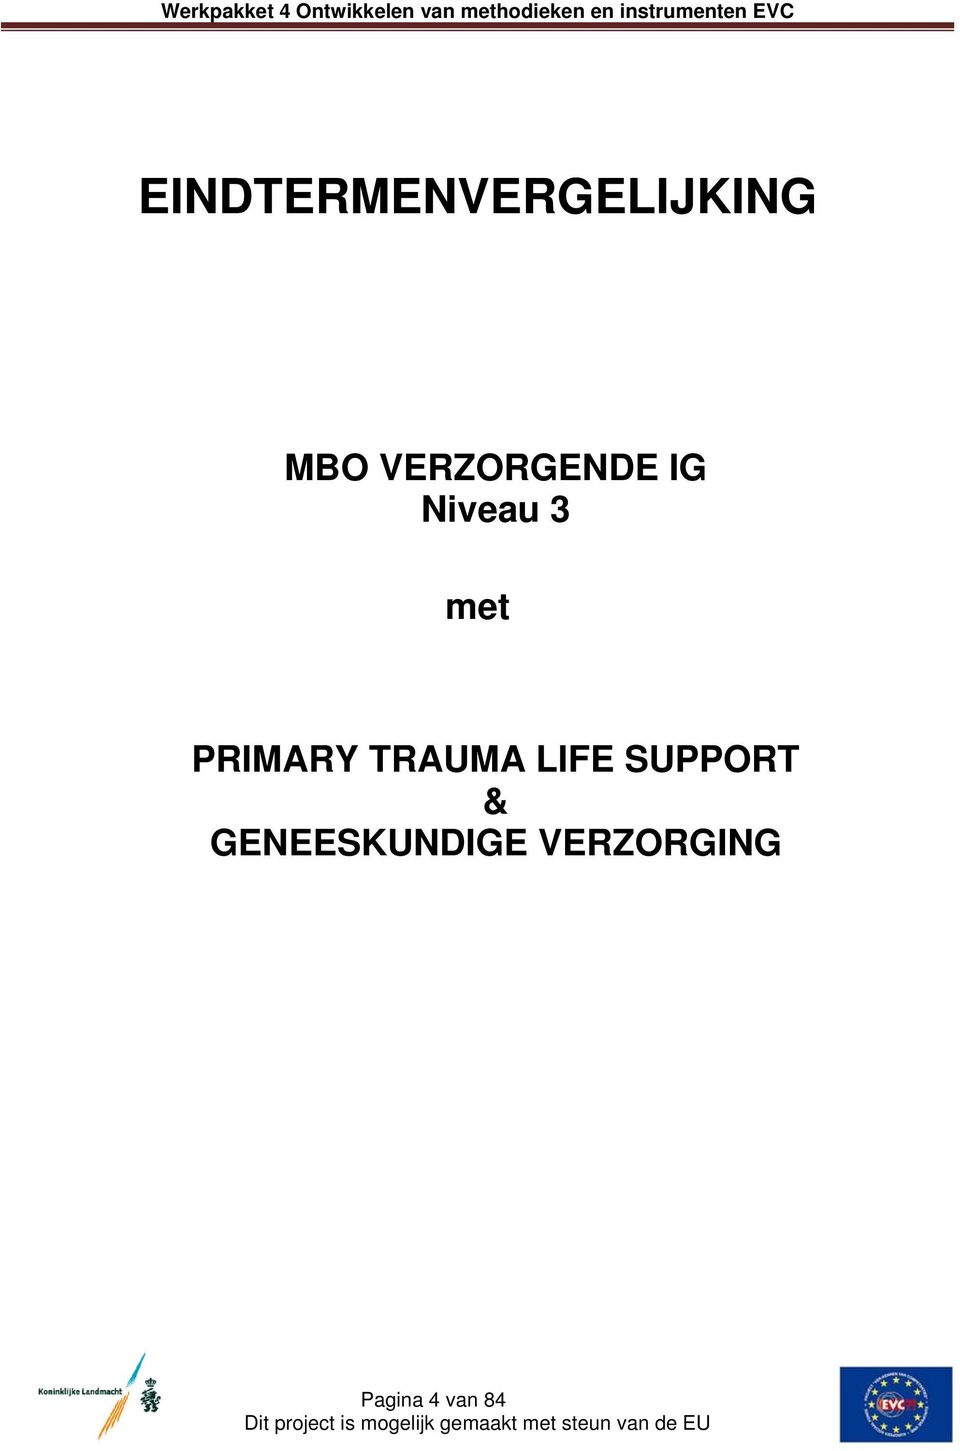 PRIMARY TRAUMA LIFE SUPPORT &